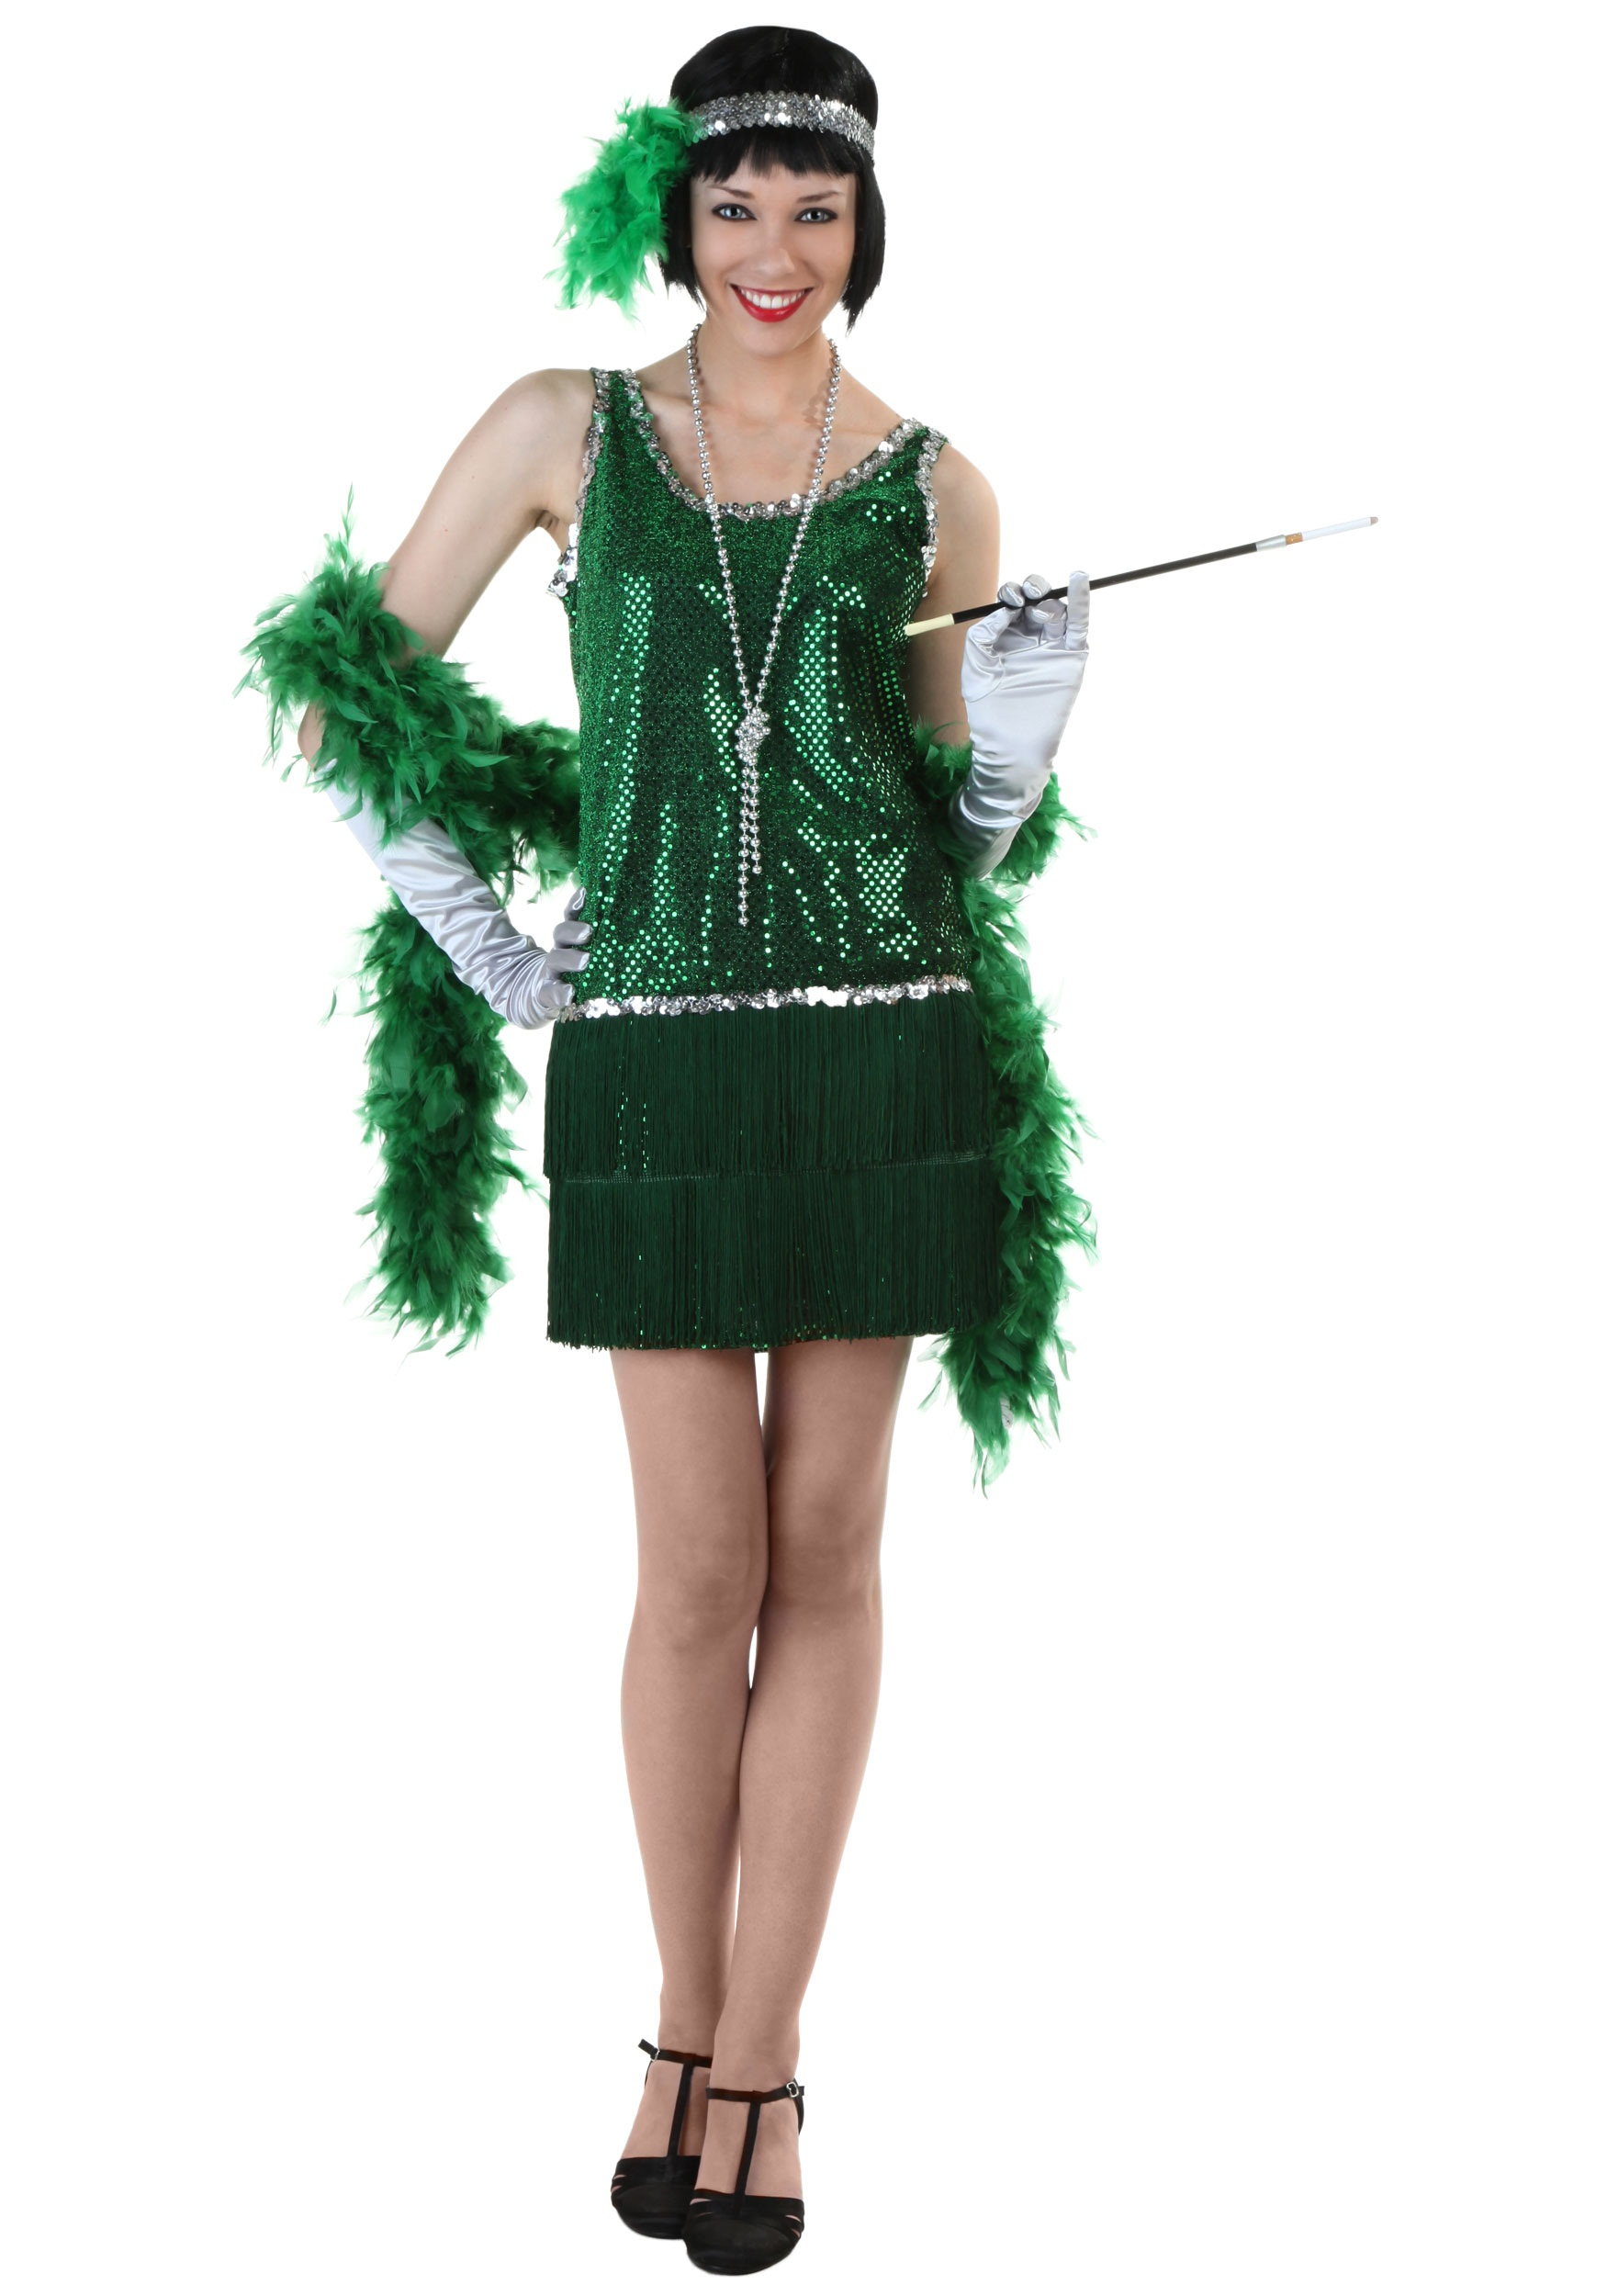 10 Fashionable Mardi Gras Costume Ideas For Women mardi gras costumes mardi gras halloween costume ideas